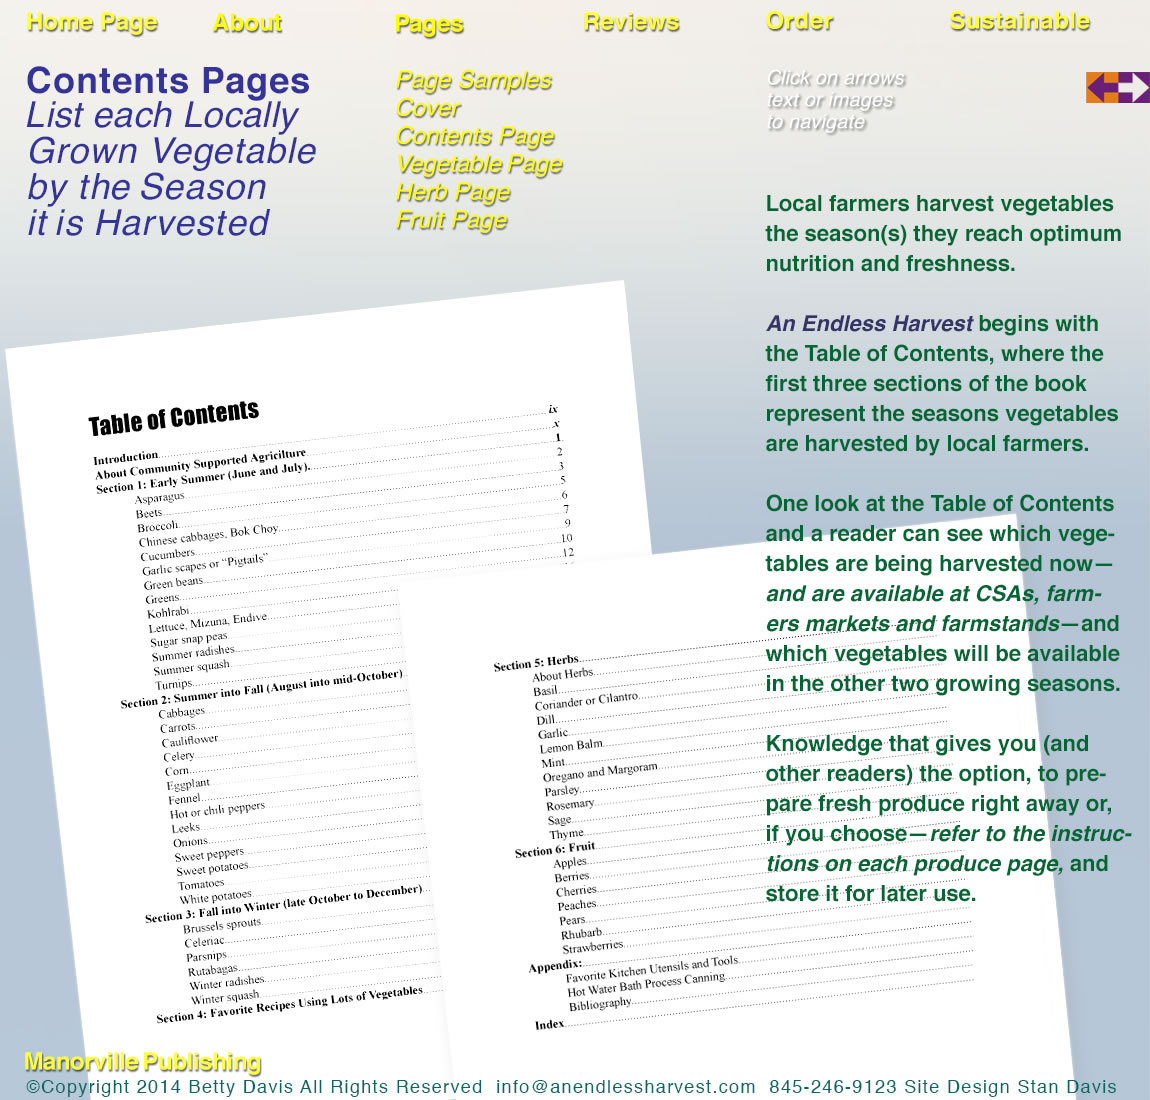 Contents Pages